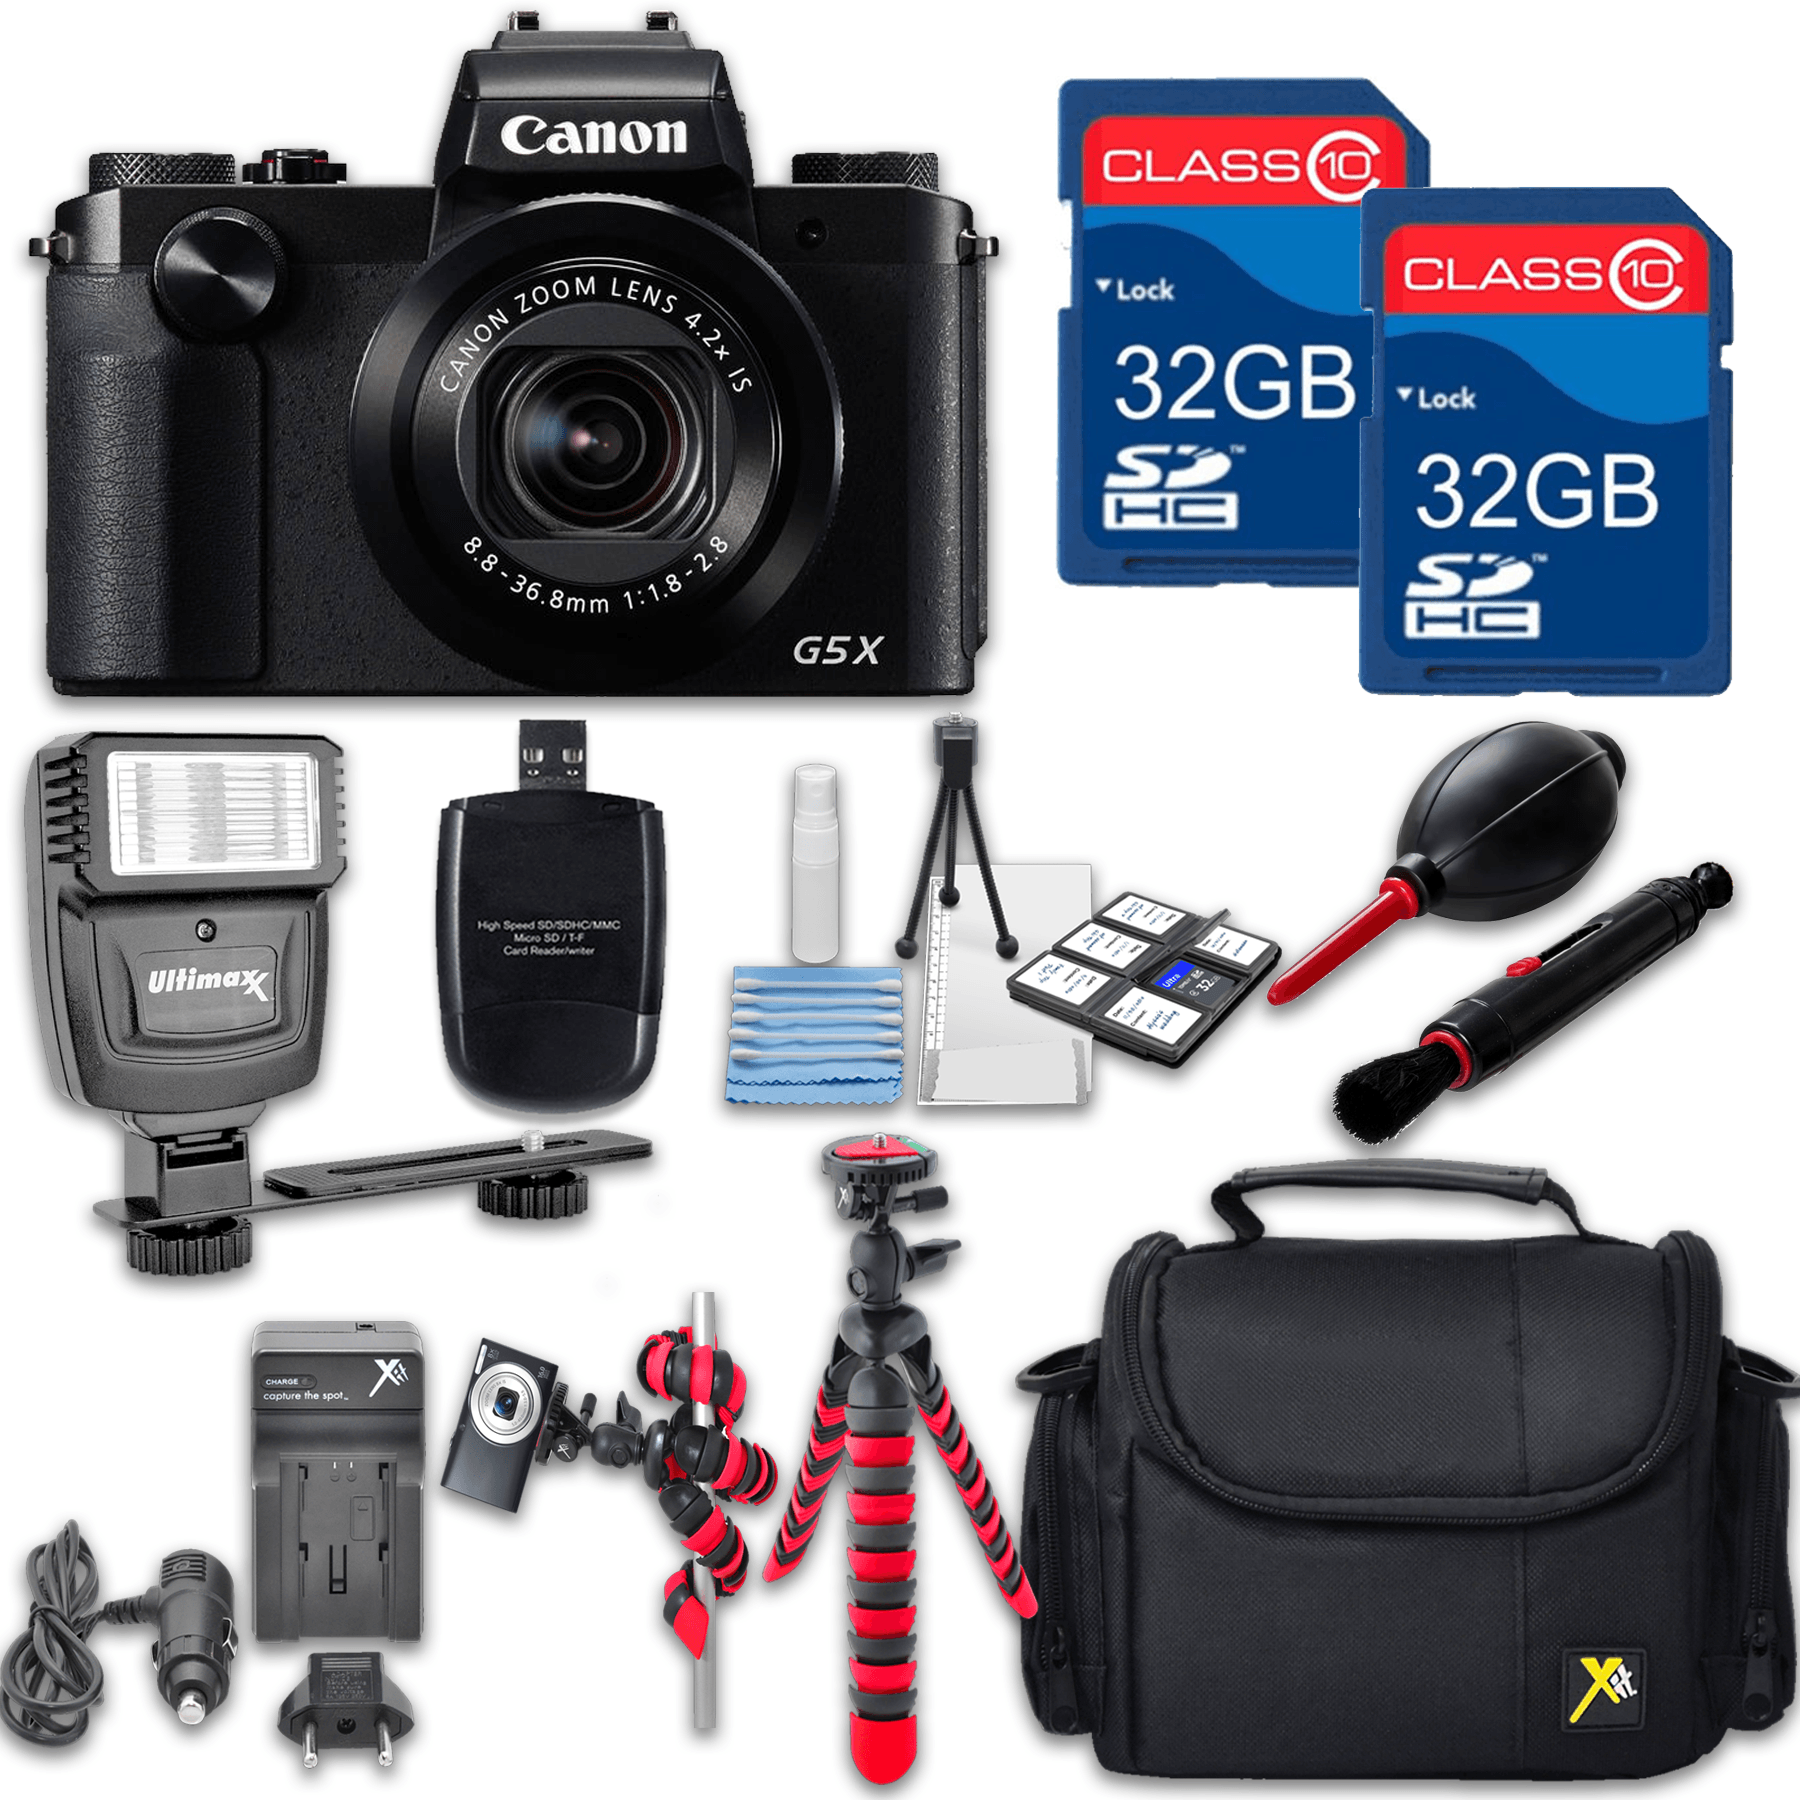 Canon Powershot G5 X (Black) HS Point and Shoot Digital Camera, W/ Case + 64GB Memory + Flash + Tripod + Case + Cleaning Kit + More